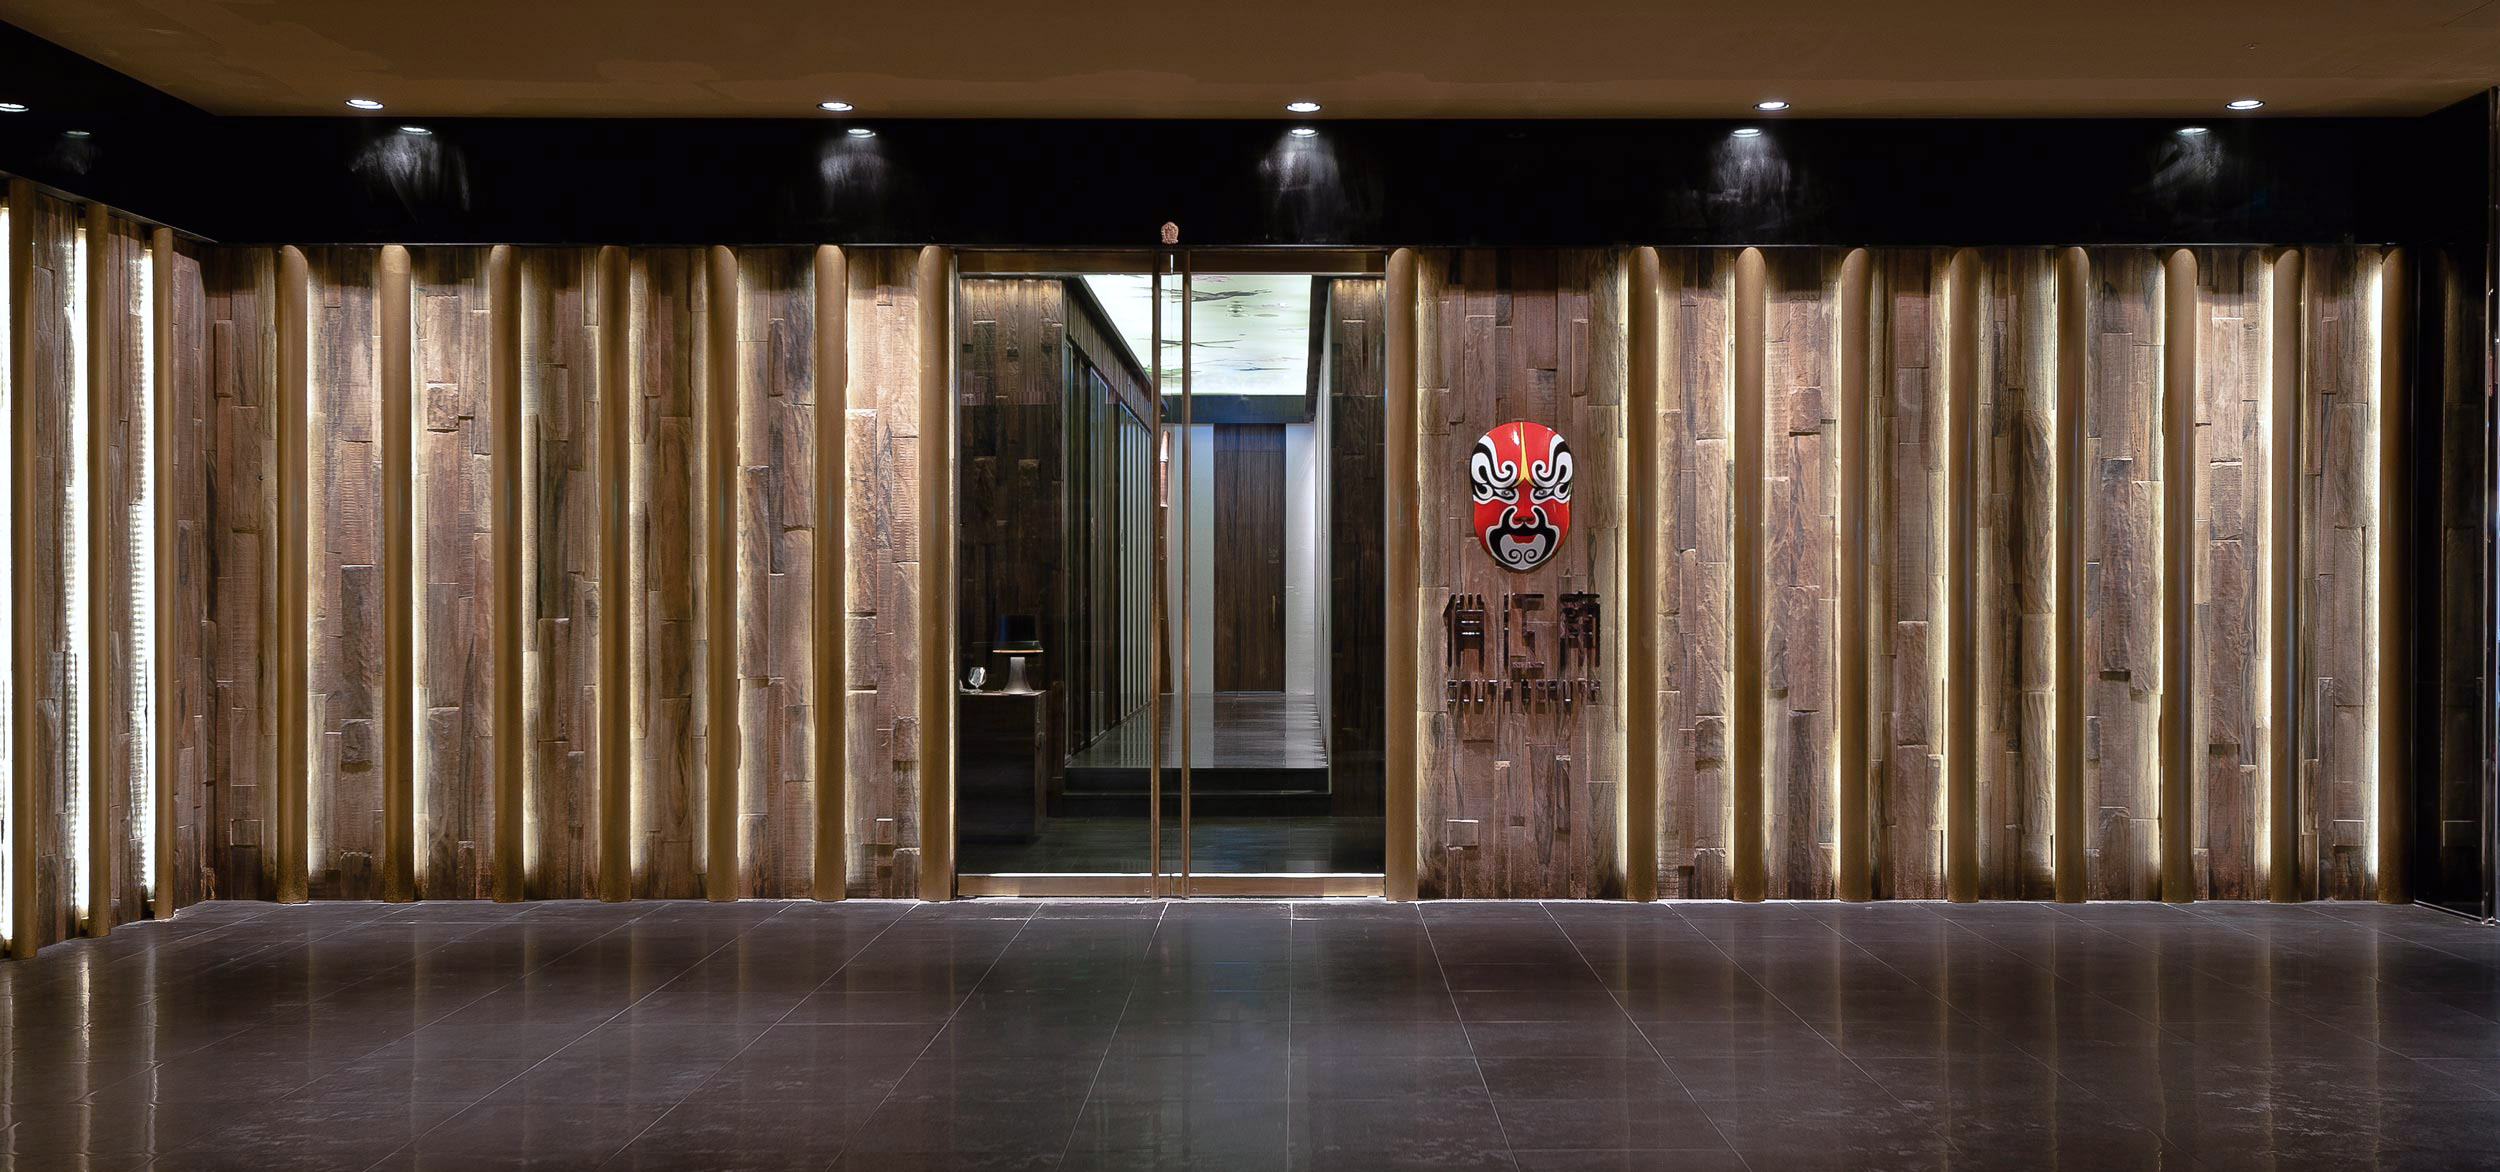 Entrance to the South Beauty luxury restaurant in Taipei